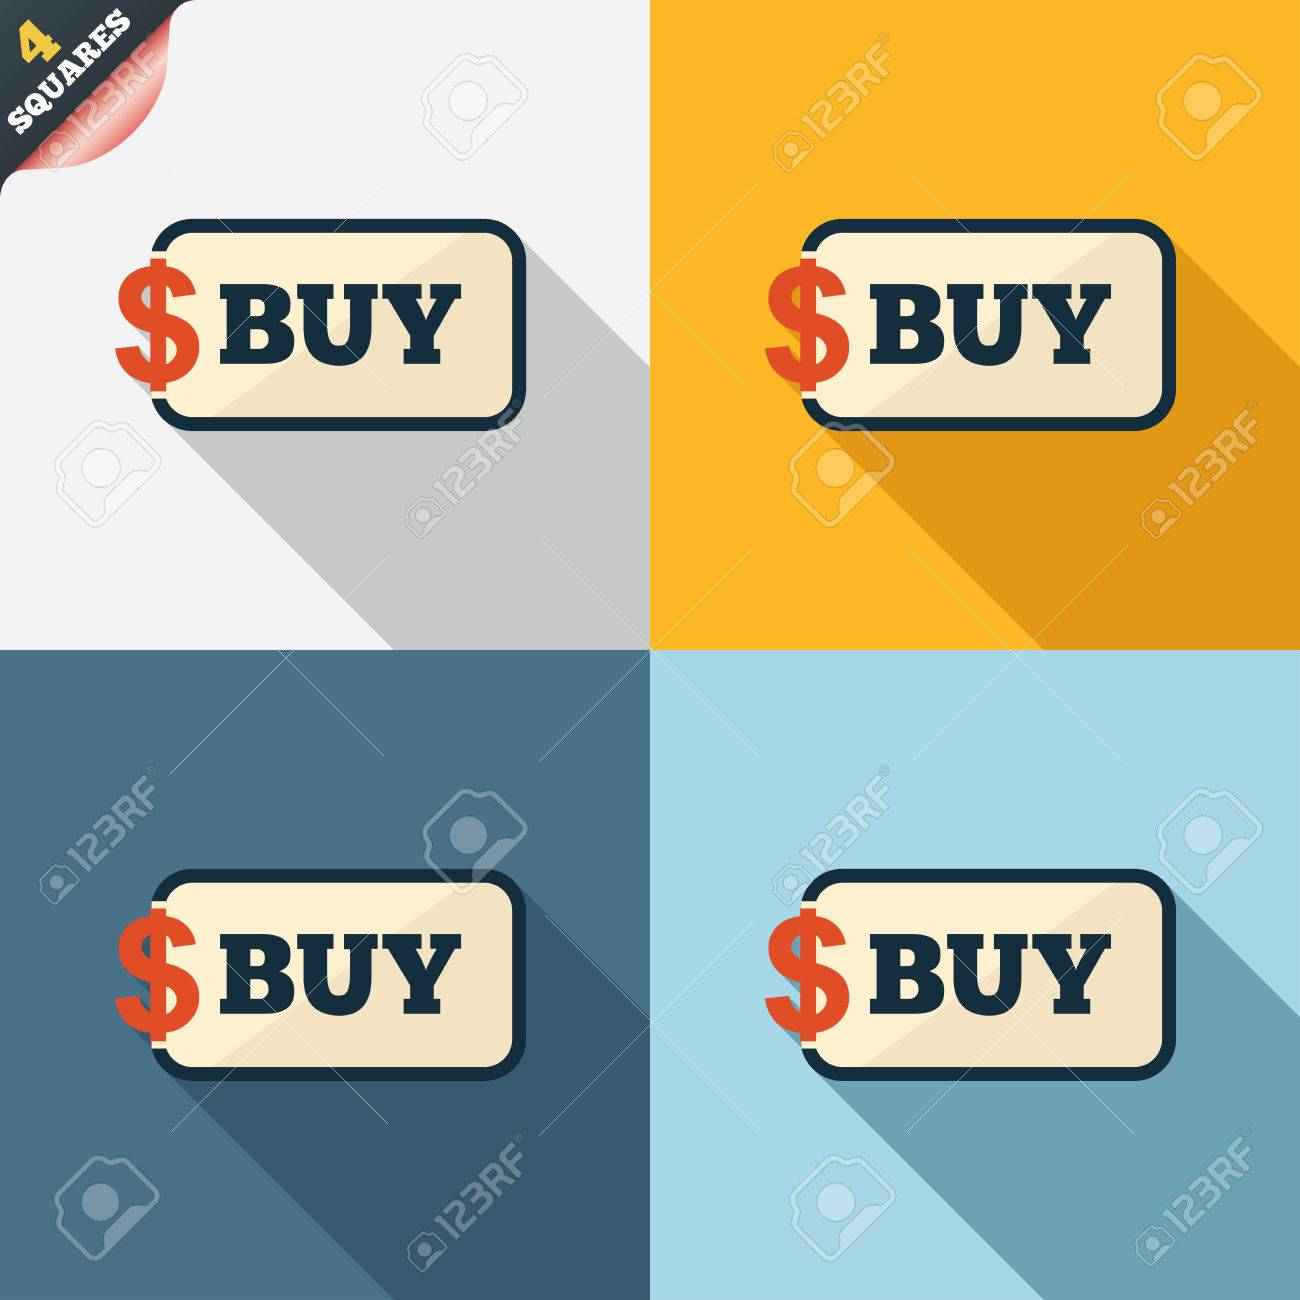 Buy Sign Icon Online Buying Dollar Usd Button Four Squares Colored Flat  Design Download How To